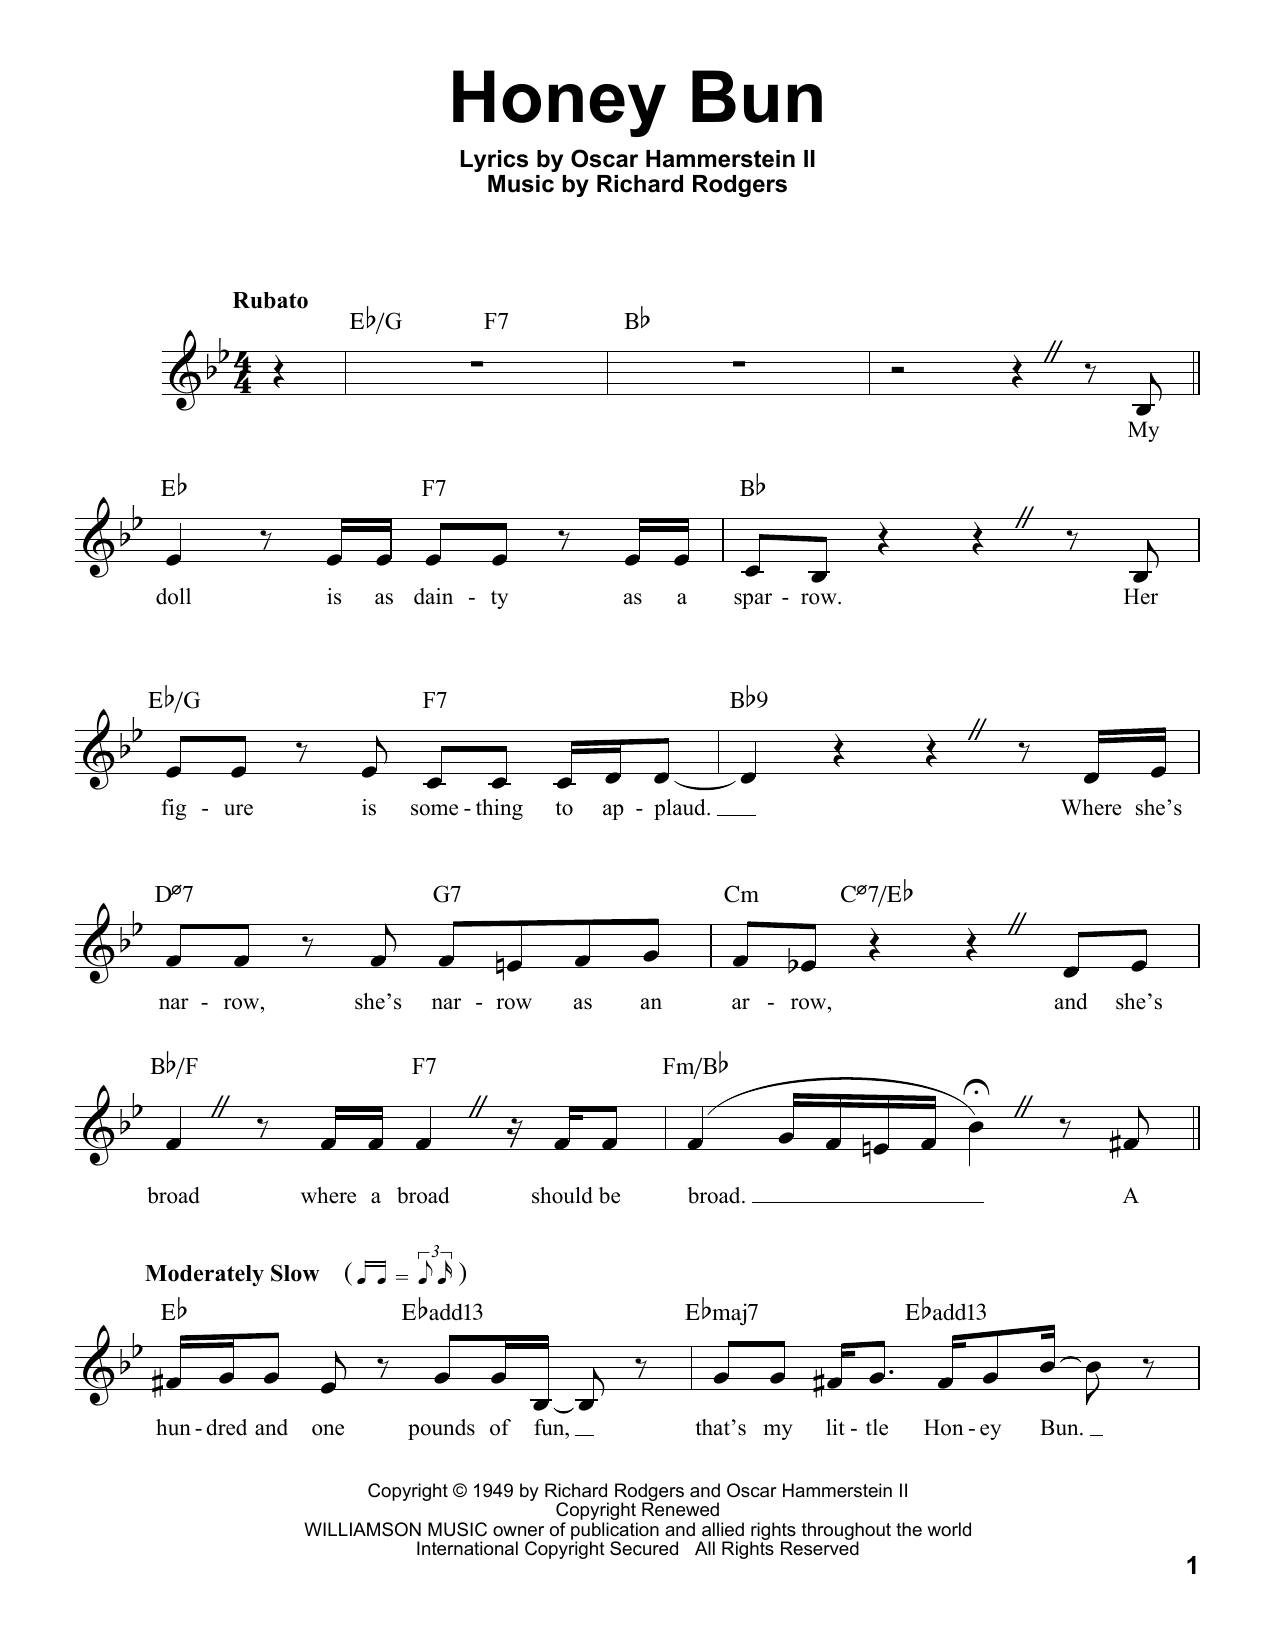 Honey Bun Sheet Music